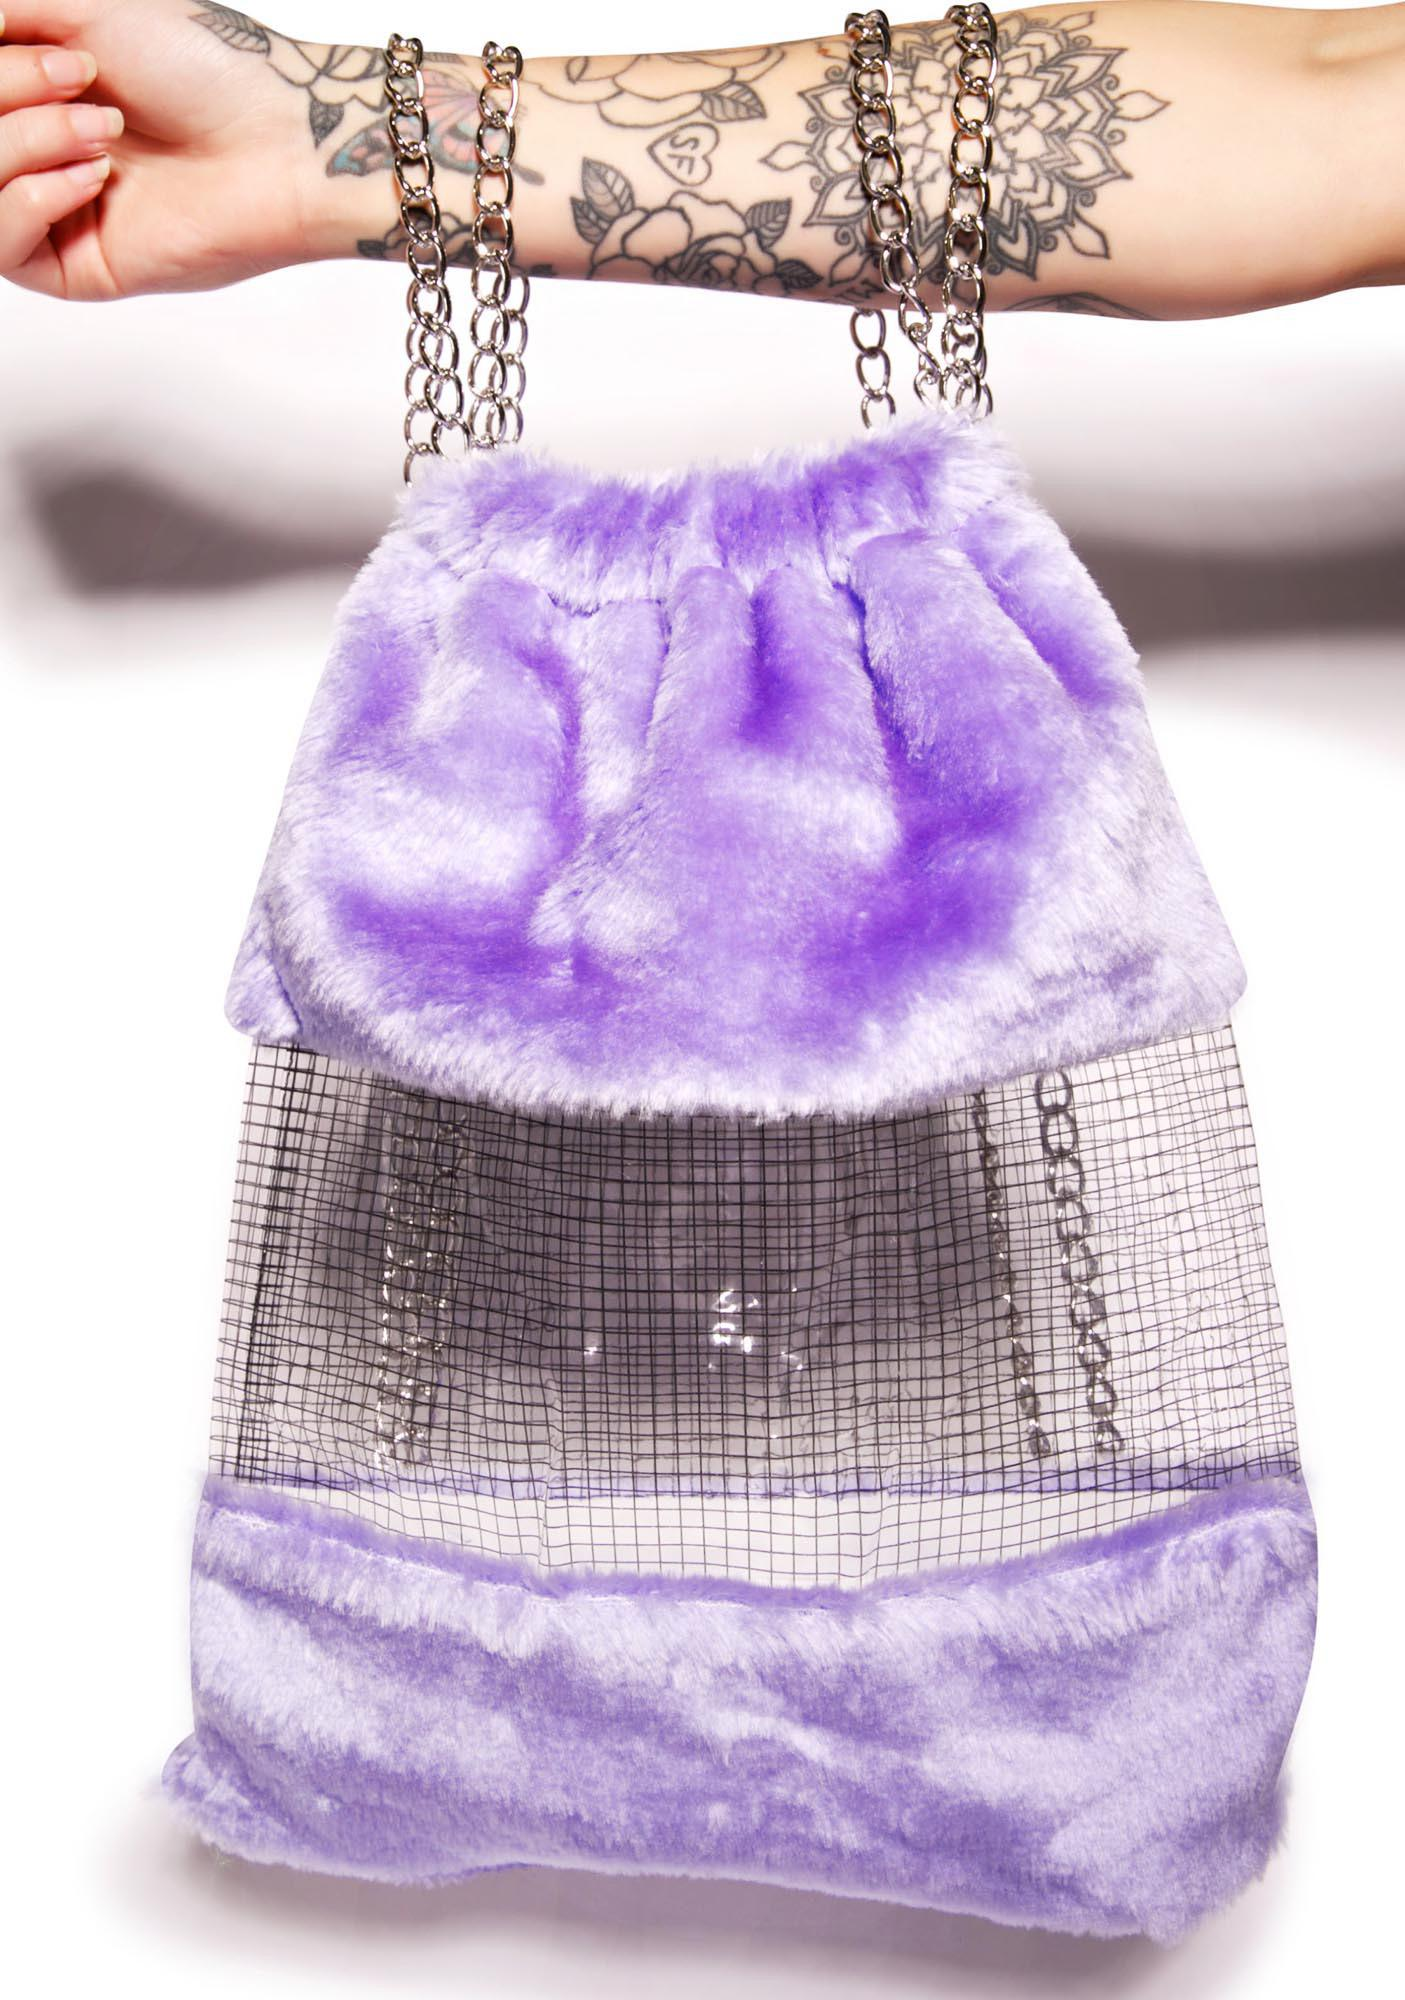 Fluffy Dreamz Drawstring Backpack